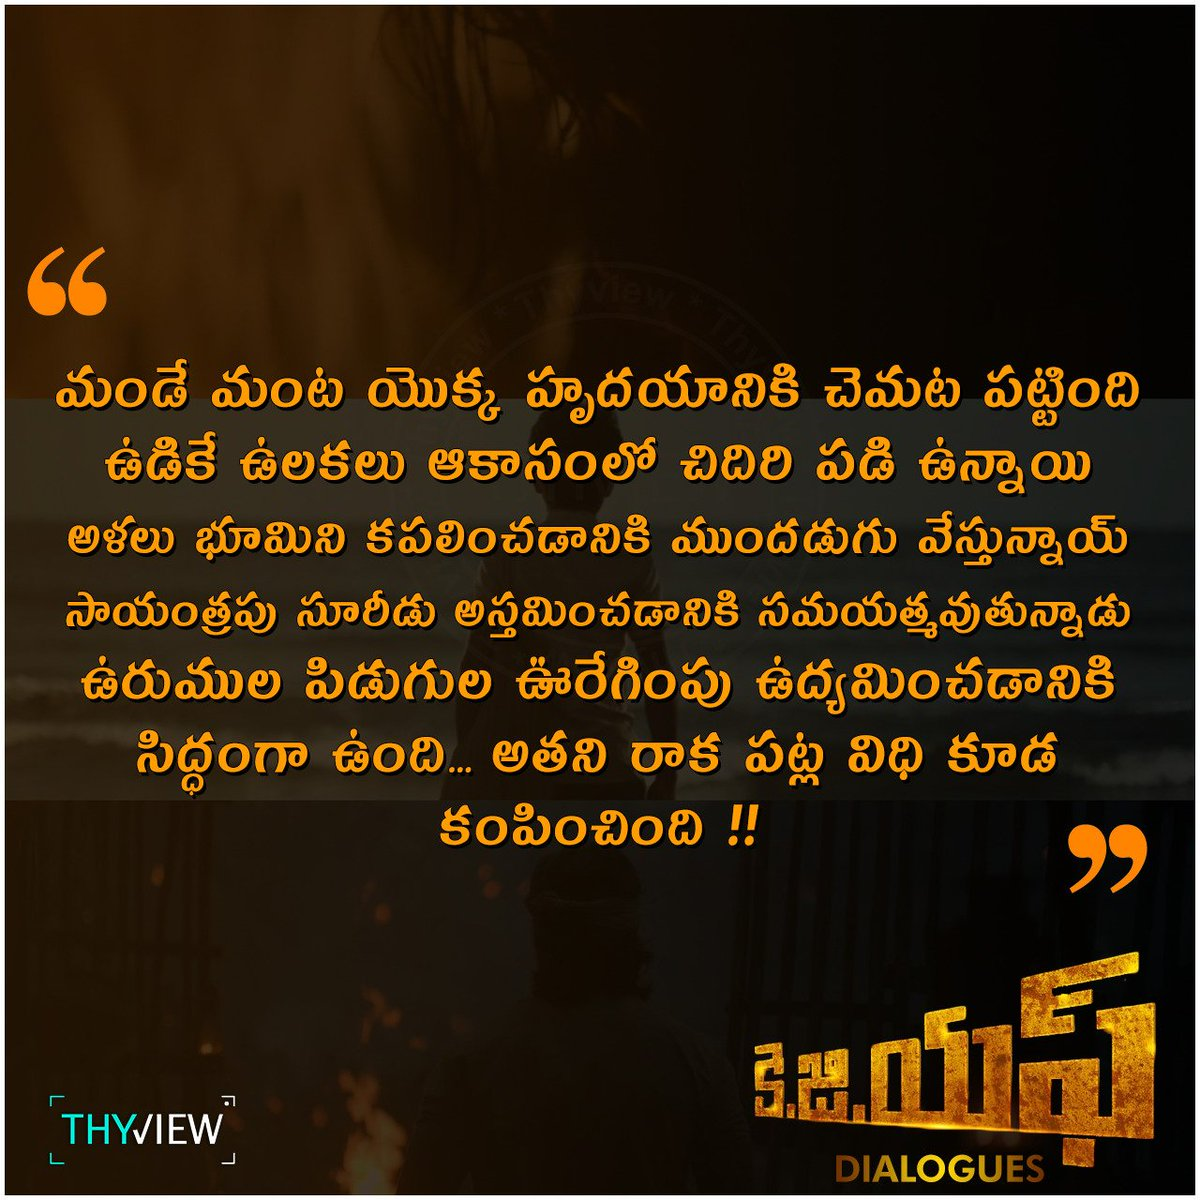 Thyview On Twitter Kgf Telugu Dialogues Yashboss Thyviewalbums Thyviewkgf Yash Kgf Subscribe Us Https T Co Tmxuwxrorn 4 4 Https T Co Xhnyyhpvkv